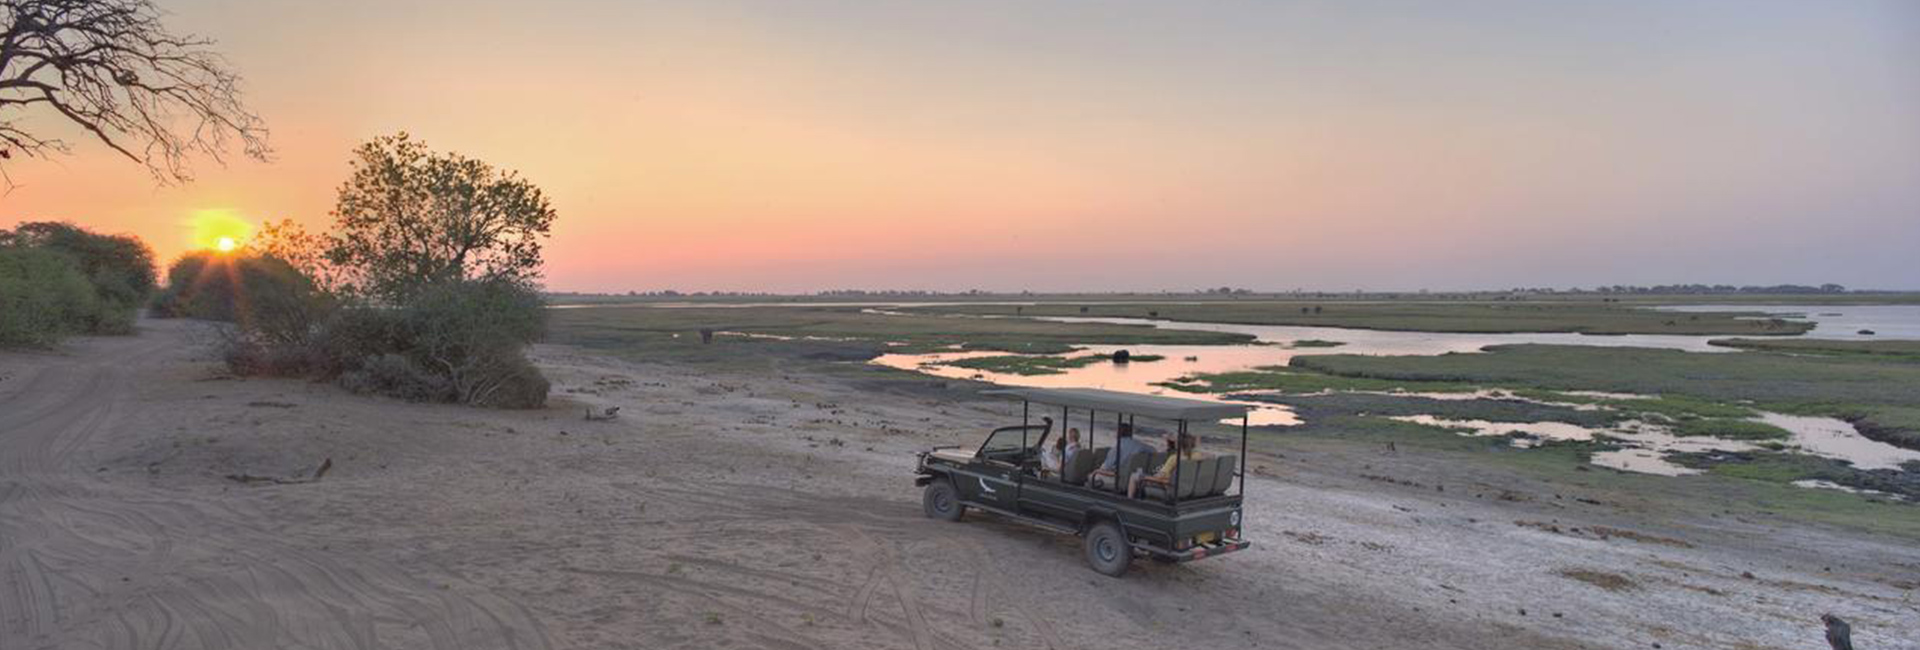 andbeyond-chobe-under-canvas-game_drive-sunset